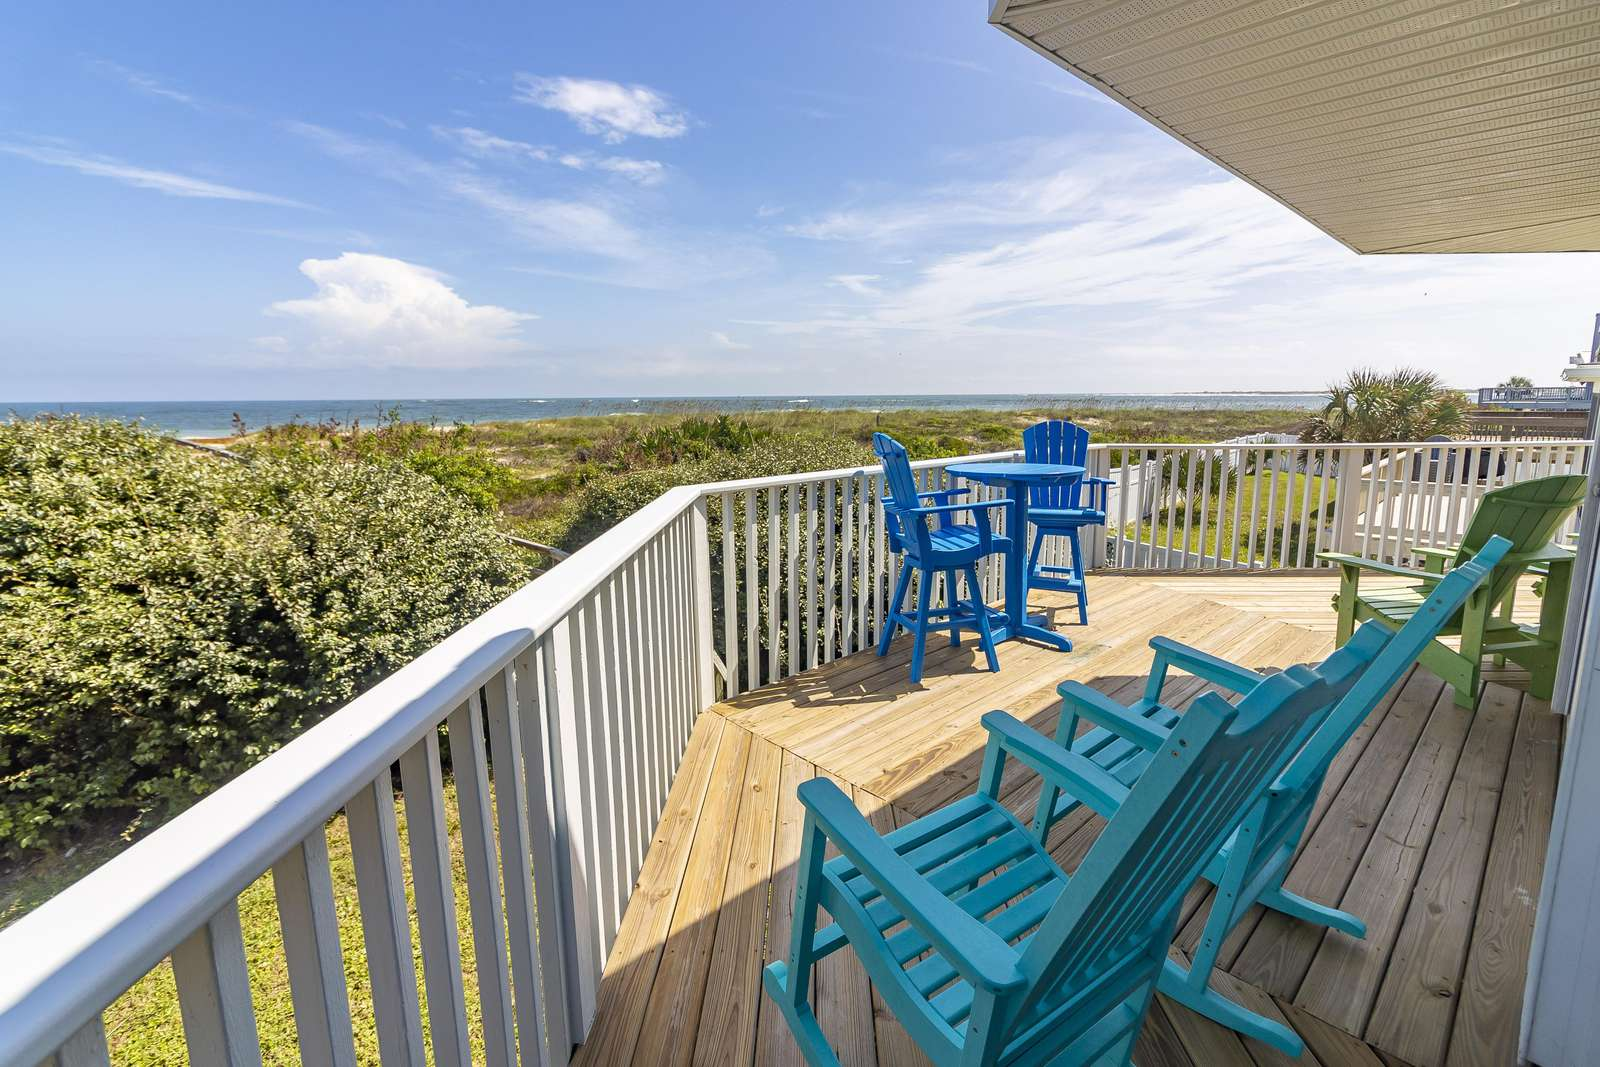 Ocean Sunrise - Oceanfront Deck w/ Outdoor Furniture